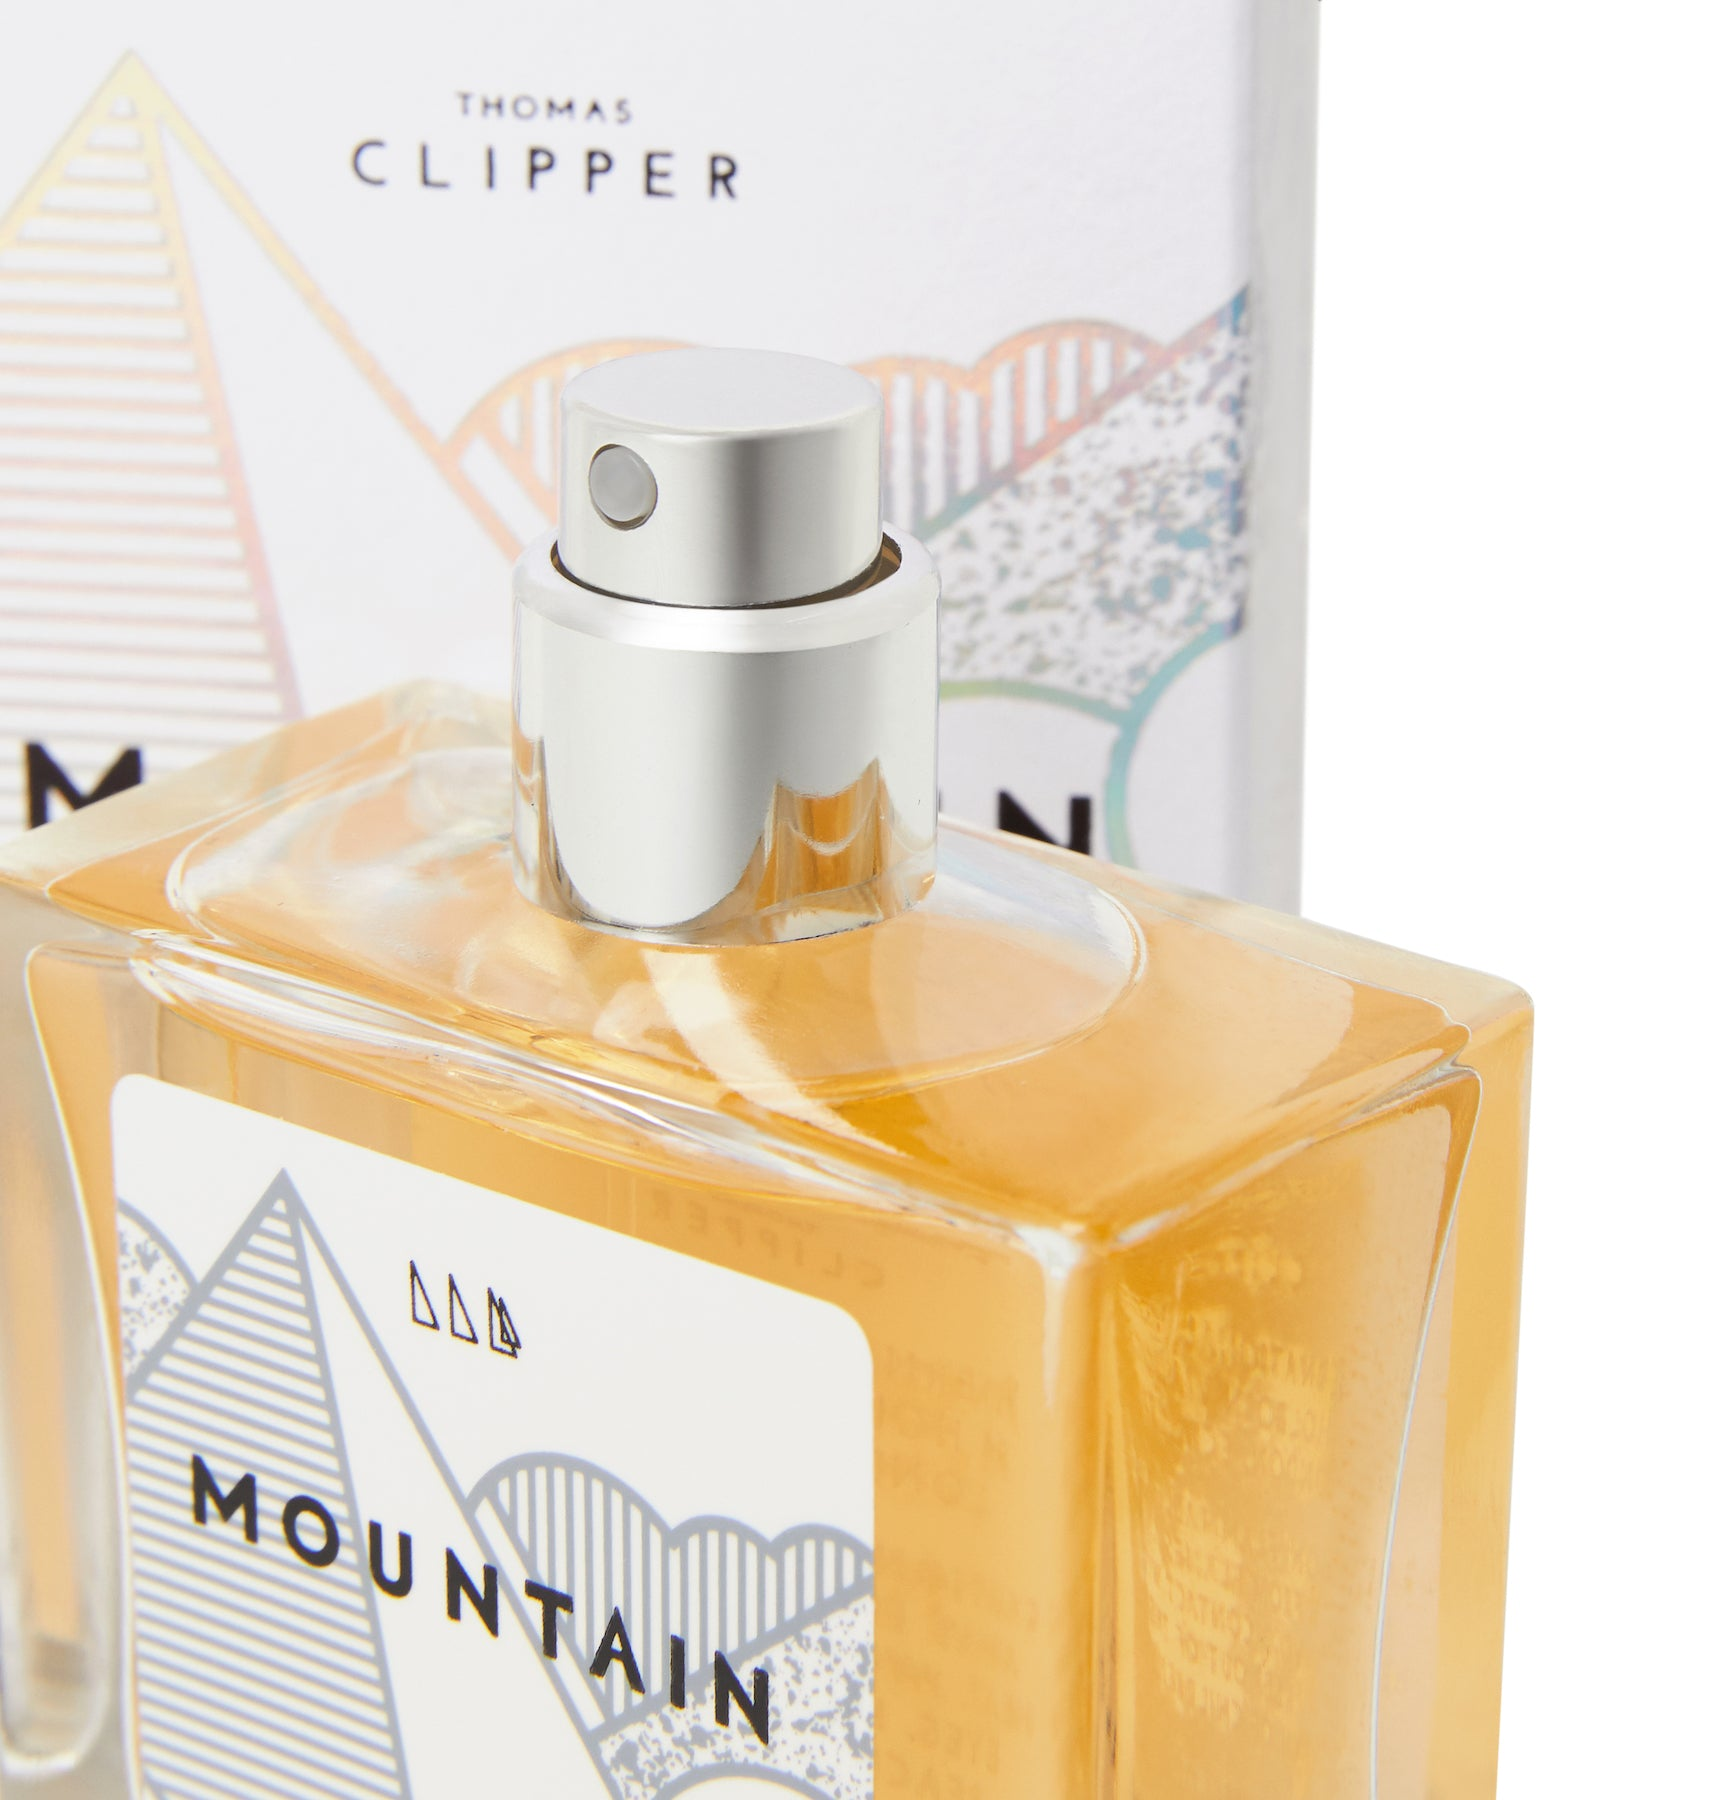 Thomas-Clipper-Mountain-Cologne-50ml